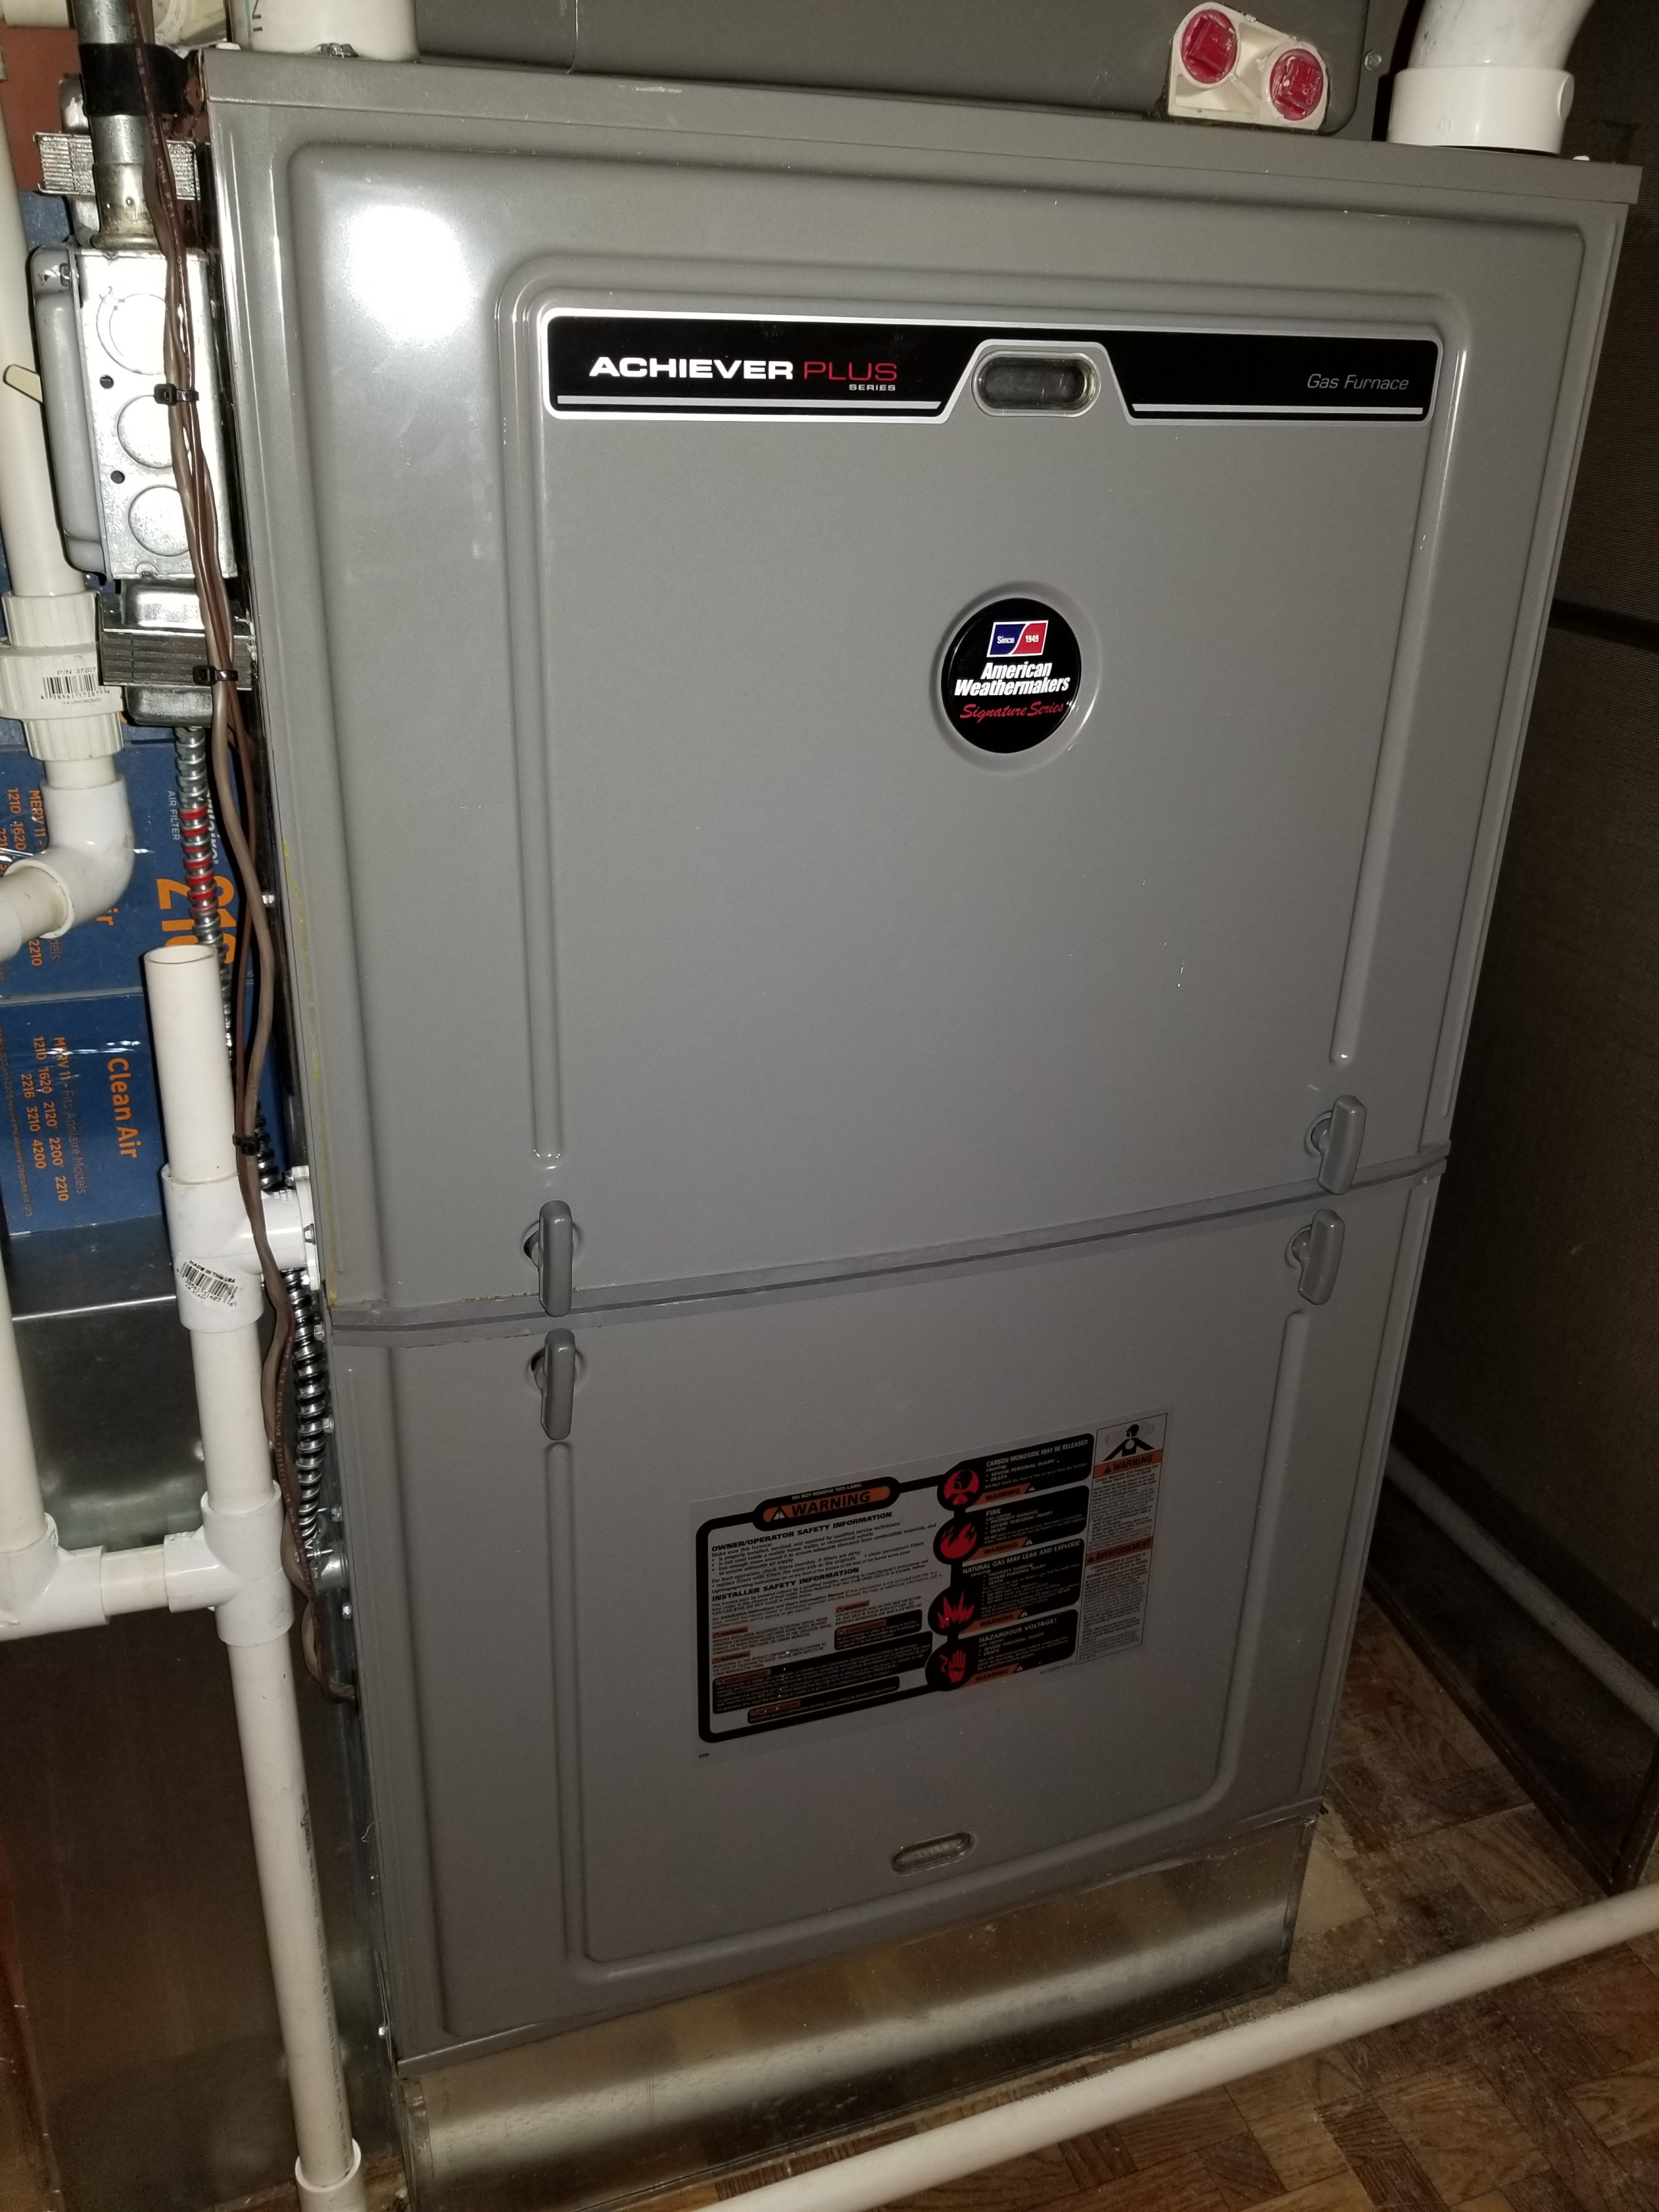 Repaired the Rheem furnace noise and made adjustments to improve the overall efficiency and life expectancy of the equipment